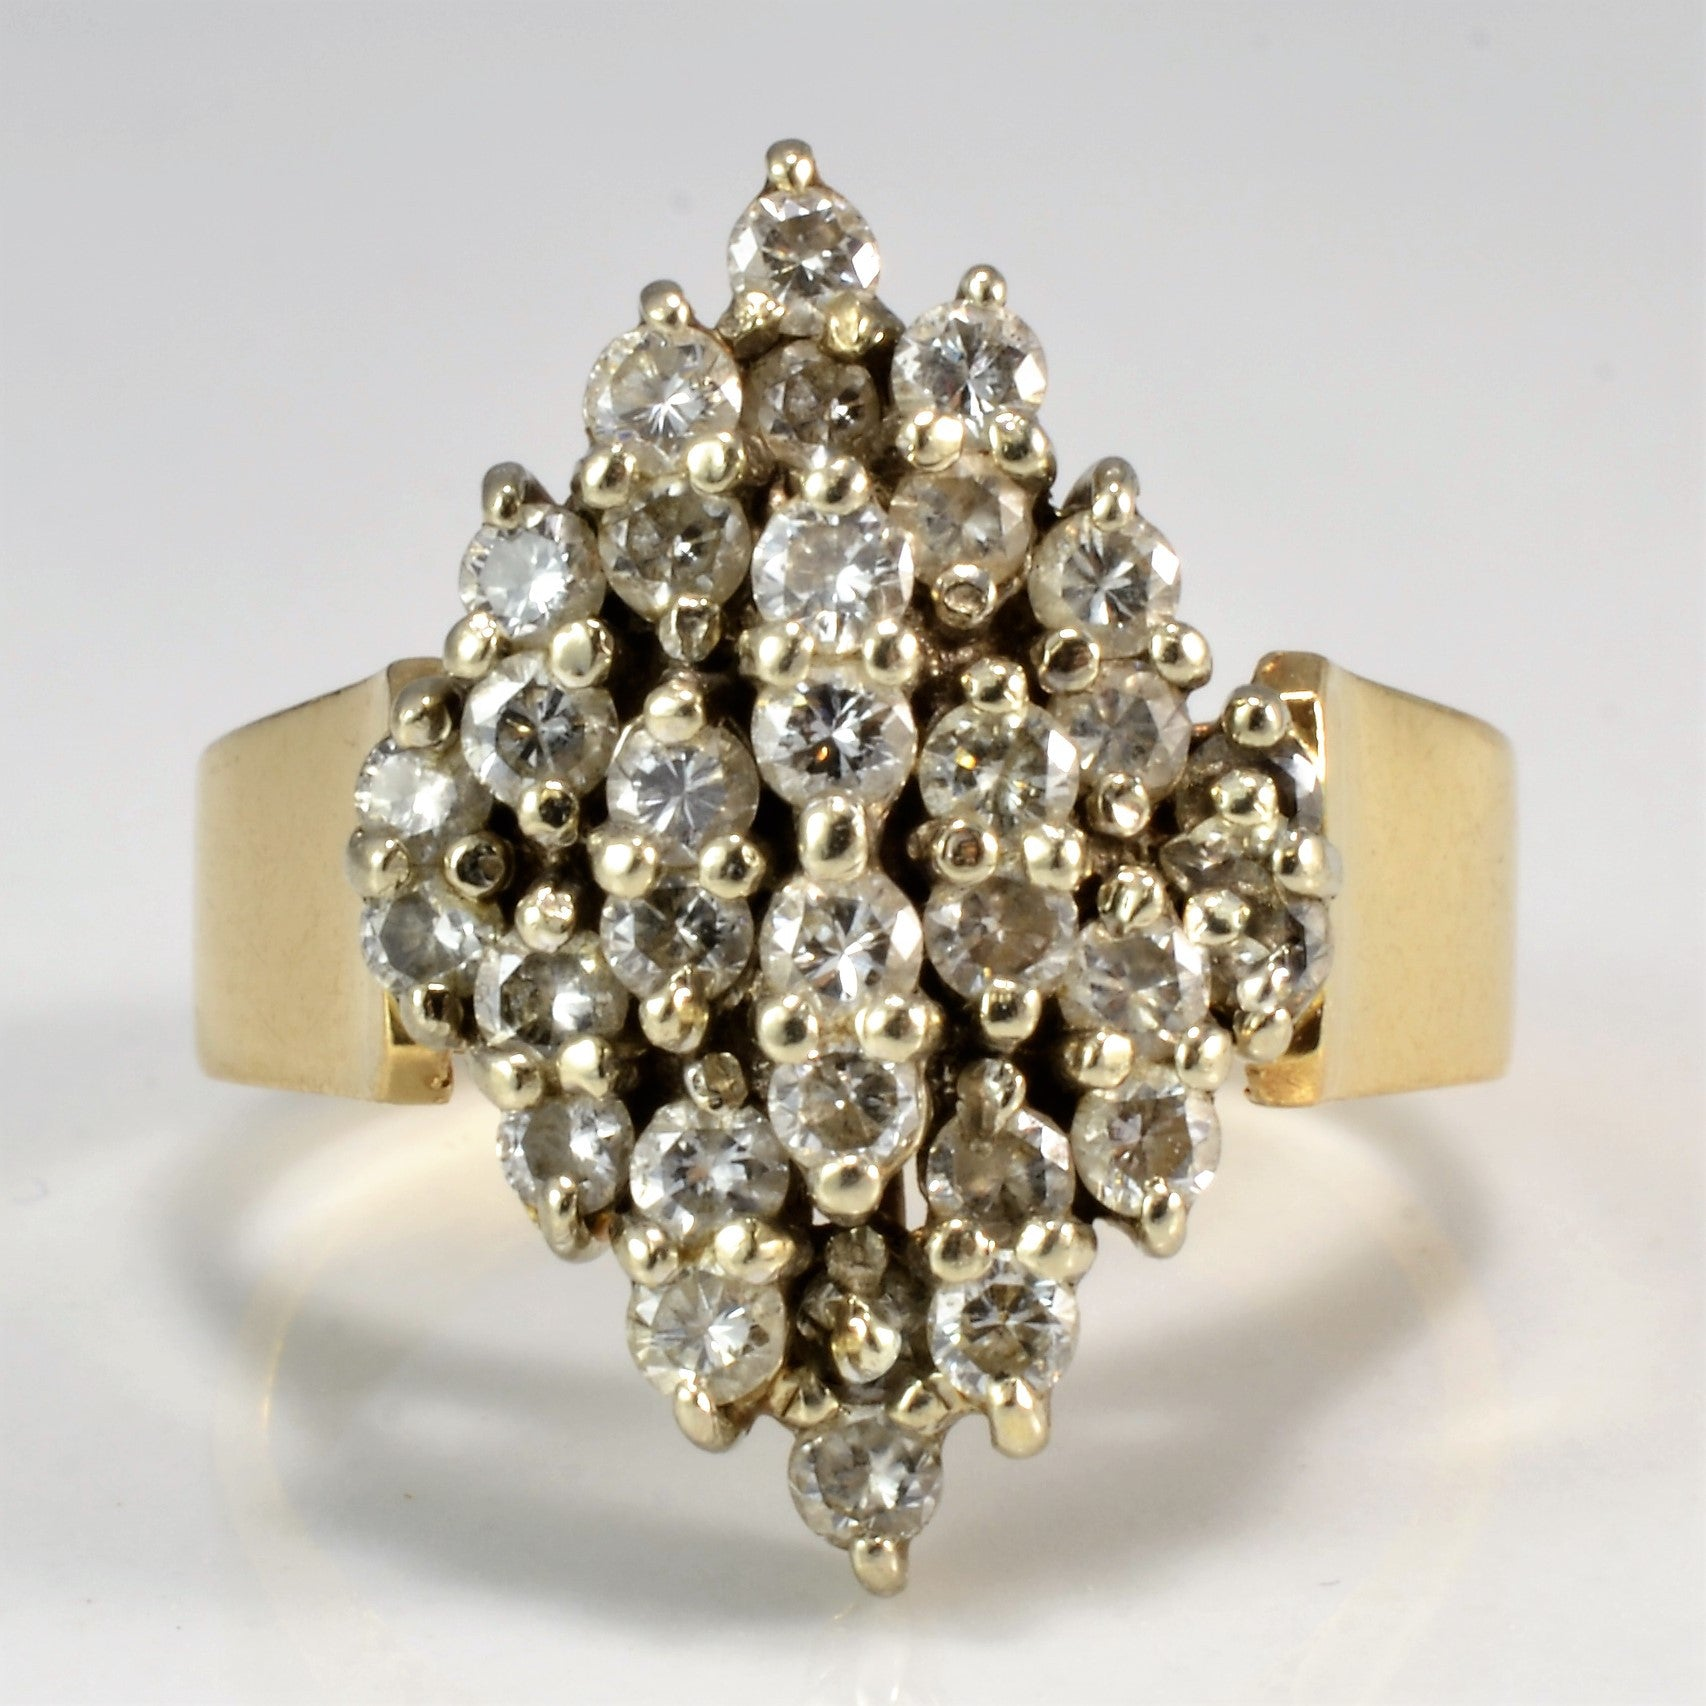 Marquise Shaped Diamond Cluster Ring | 0.91 ctw, SZ 5 |